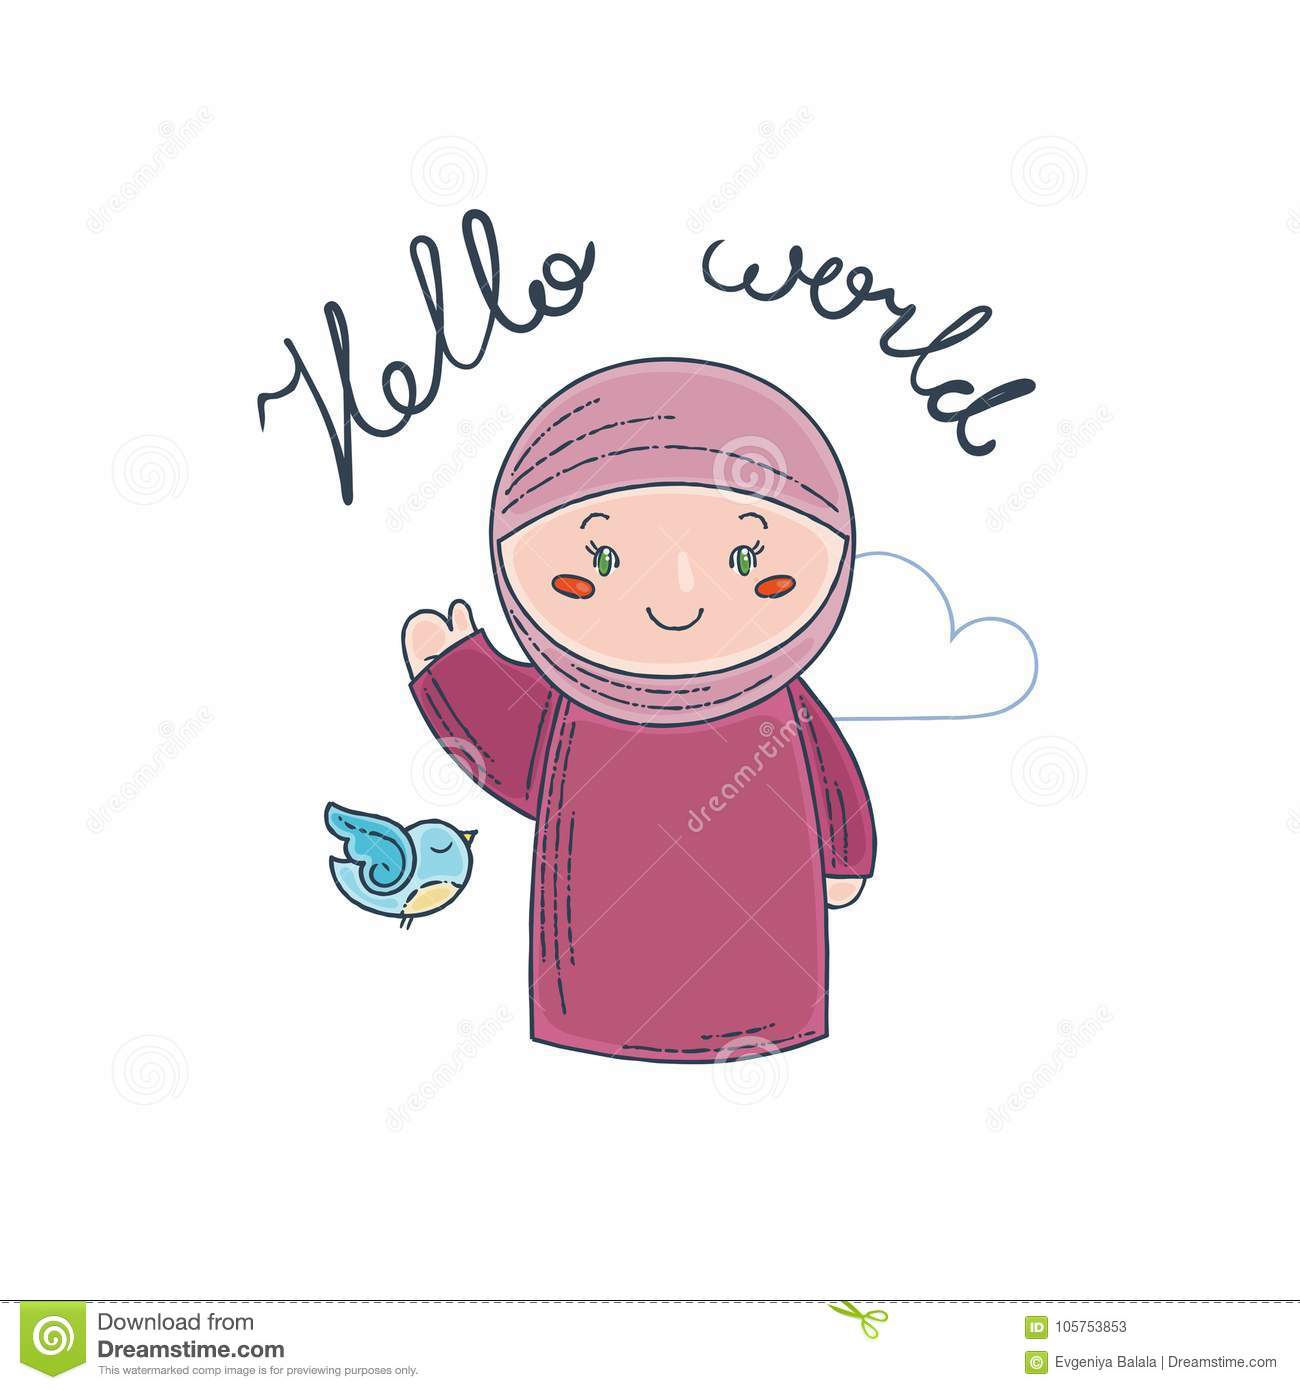 Cute And Happy Girl Say Hello  Stock Vector - Illustration of hello